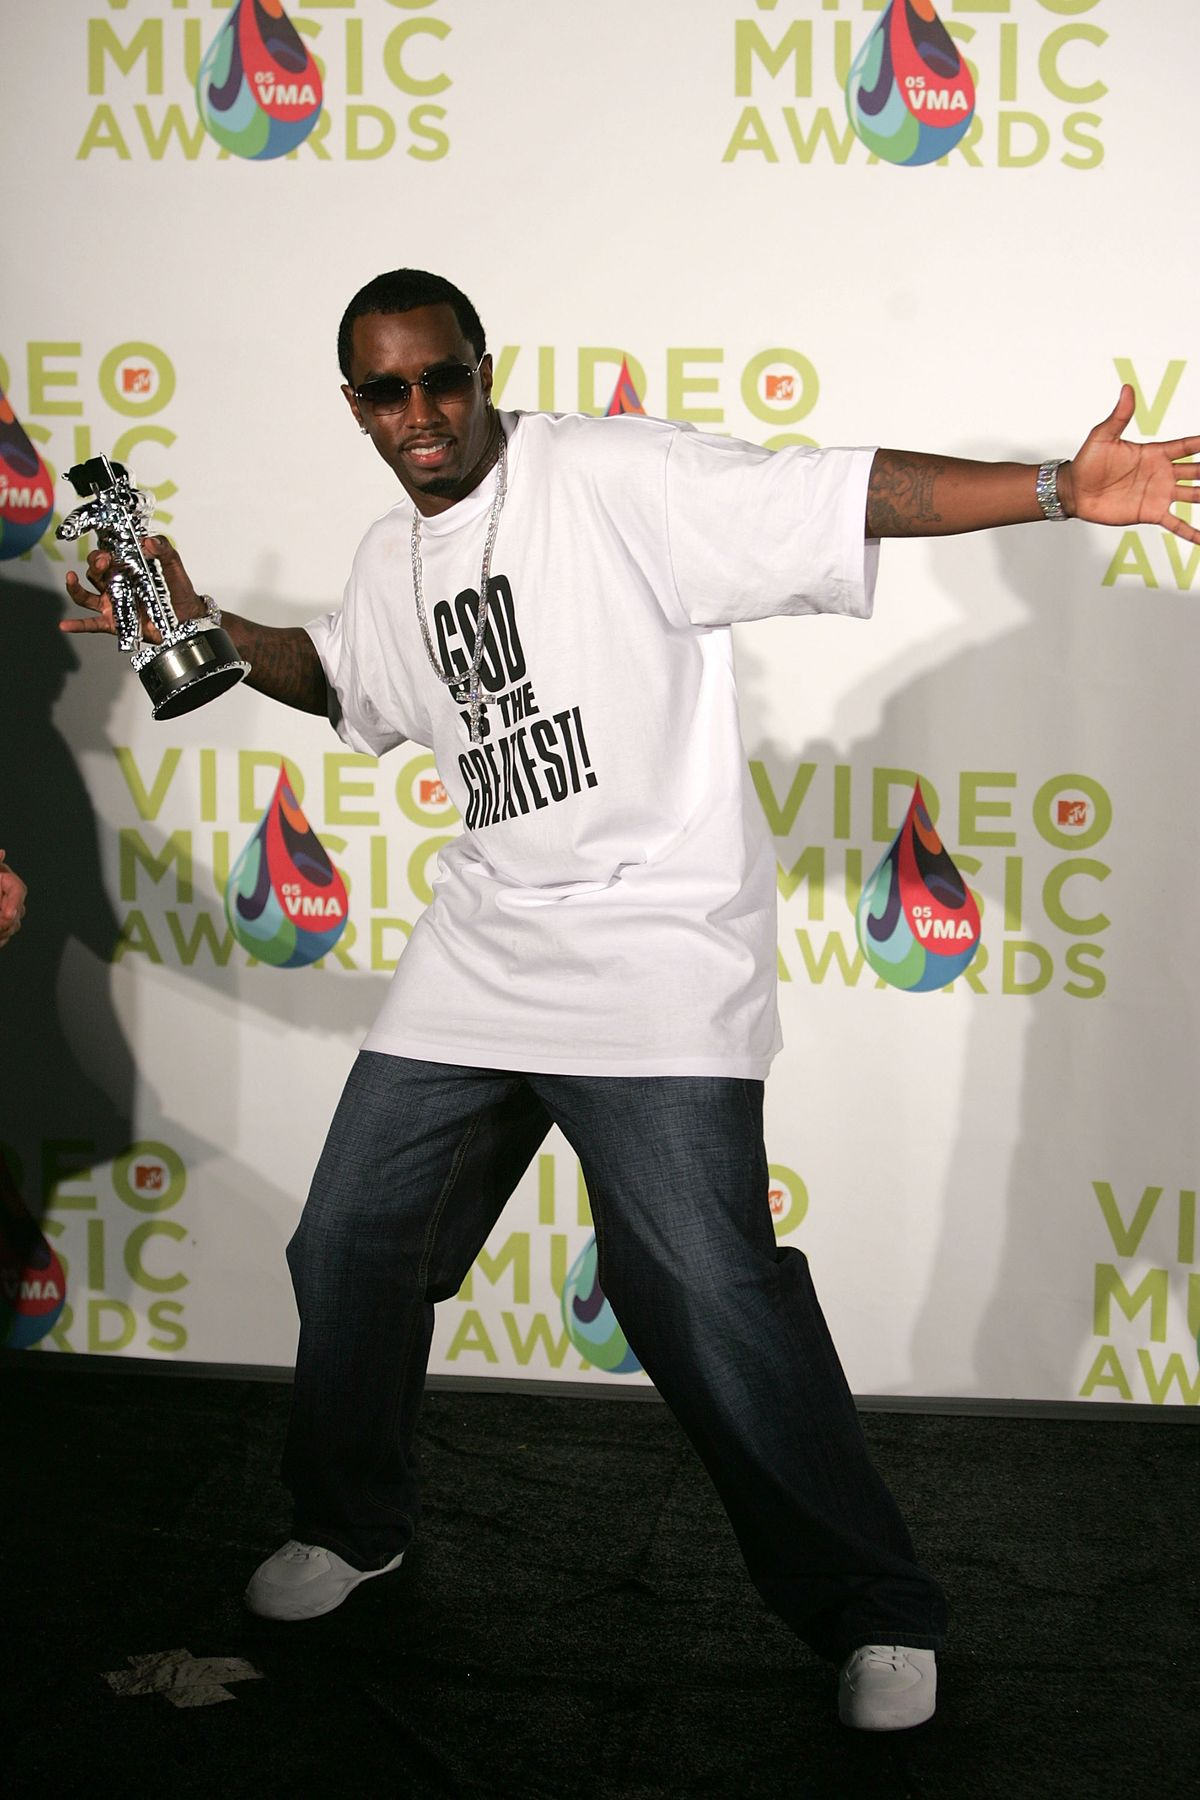 MIAMI - AUGUST 28: Rapper Diddy poses in the press room during the 2005 MTV Video Music Awards at the American Airlines Arena on August 28, 2005 in Miami, Florida. (Photo by Alexander Tamargo/Getty Images)